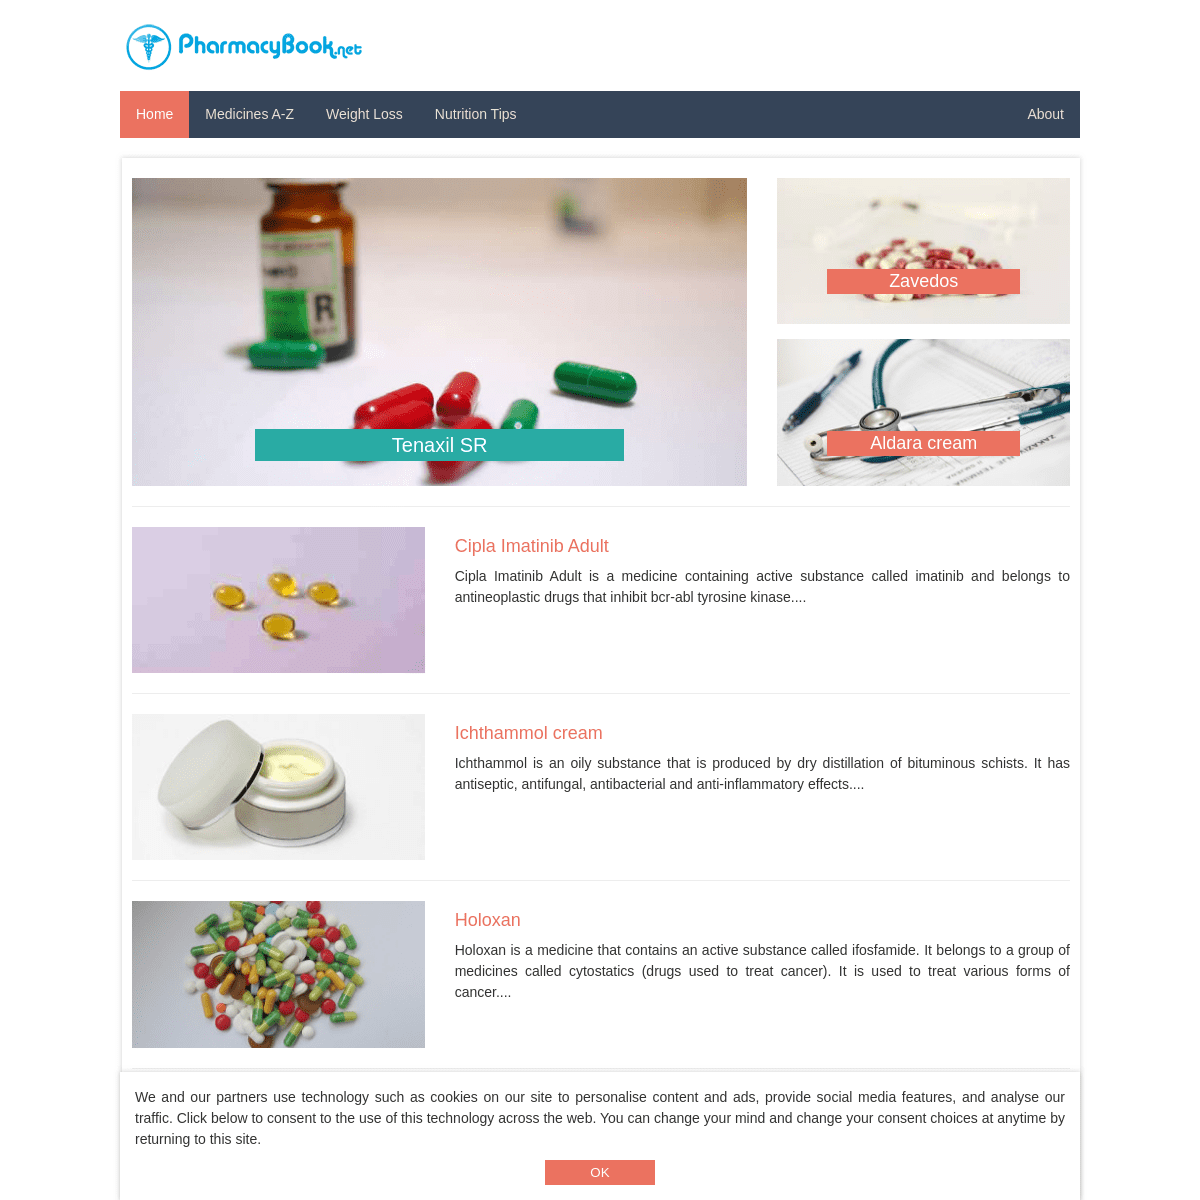 ArchiveBay.com - pharmacybook.net - Pharmacybook - drugs information, use, side effects and more